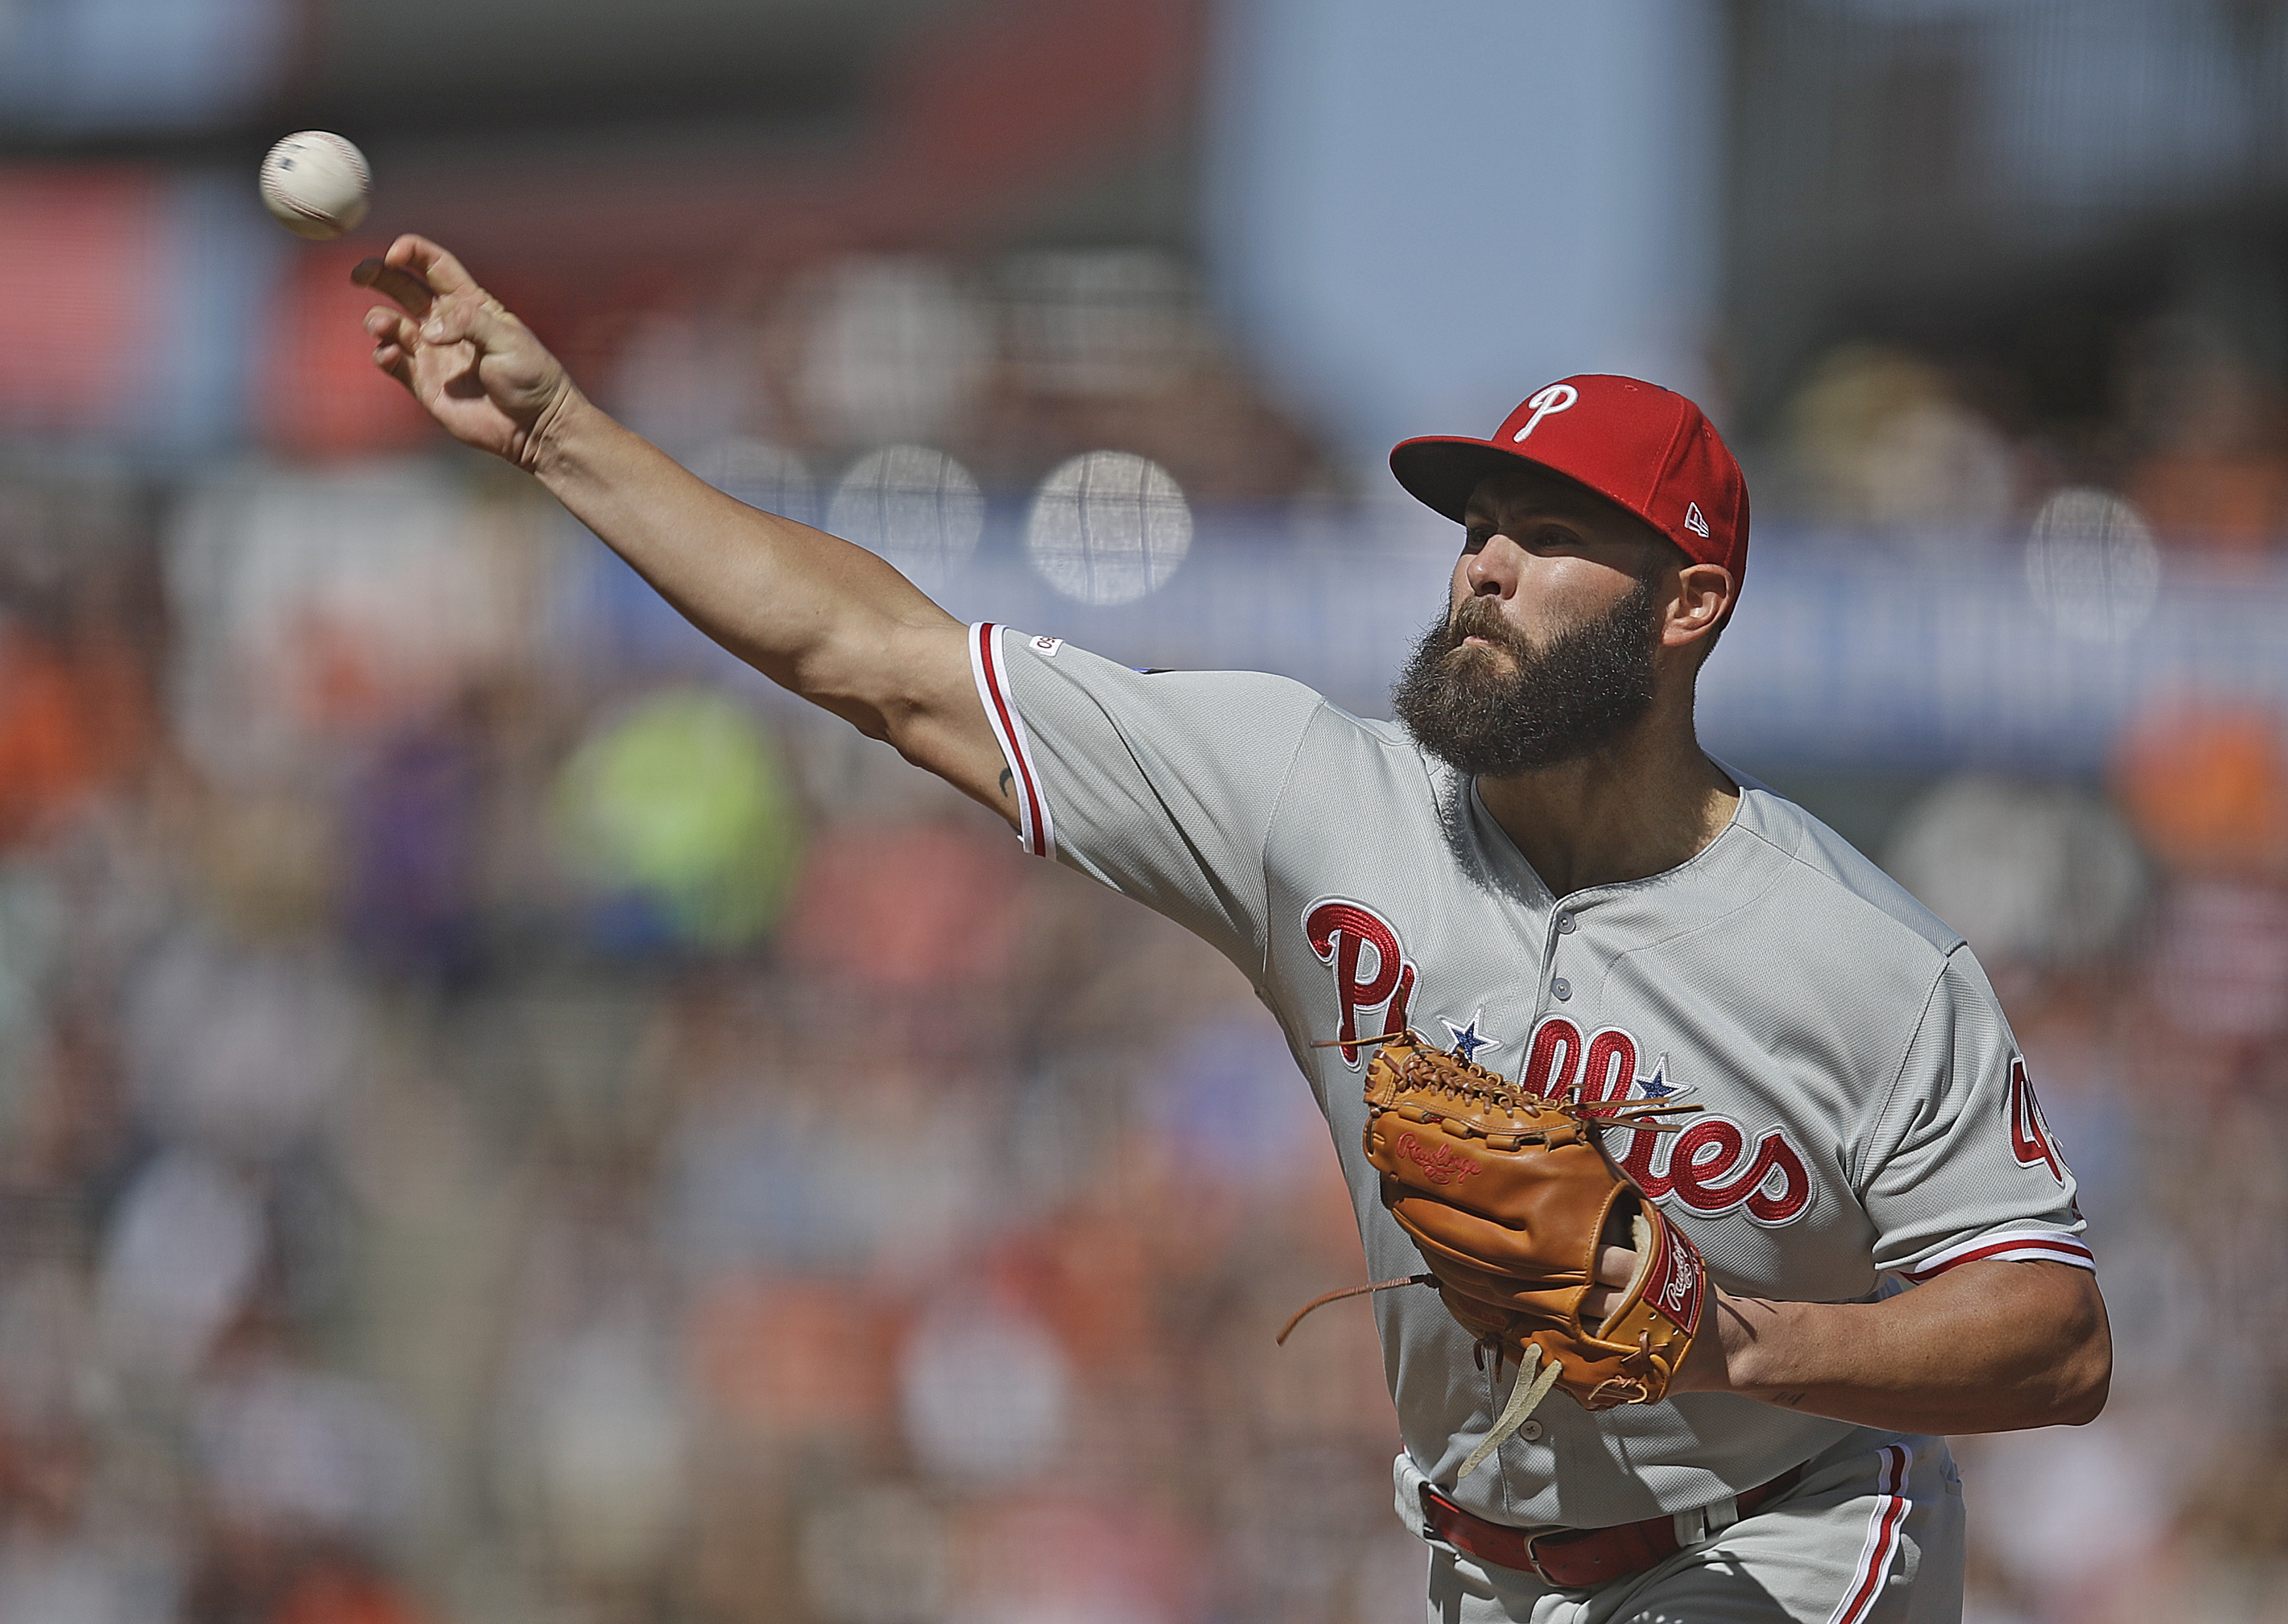 Jake Arrieta unlikely to pitch again this season for Phils